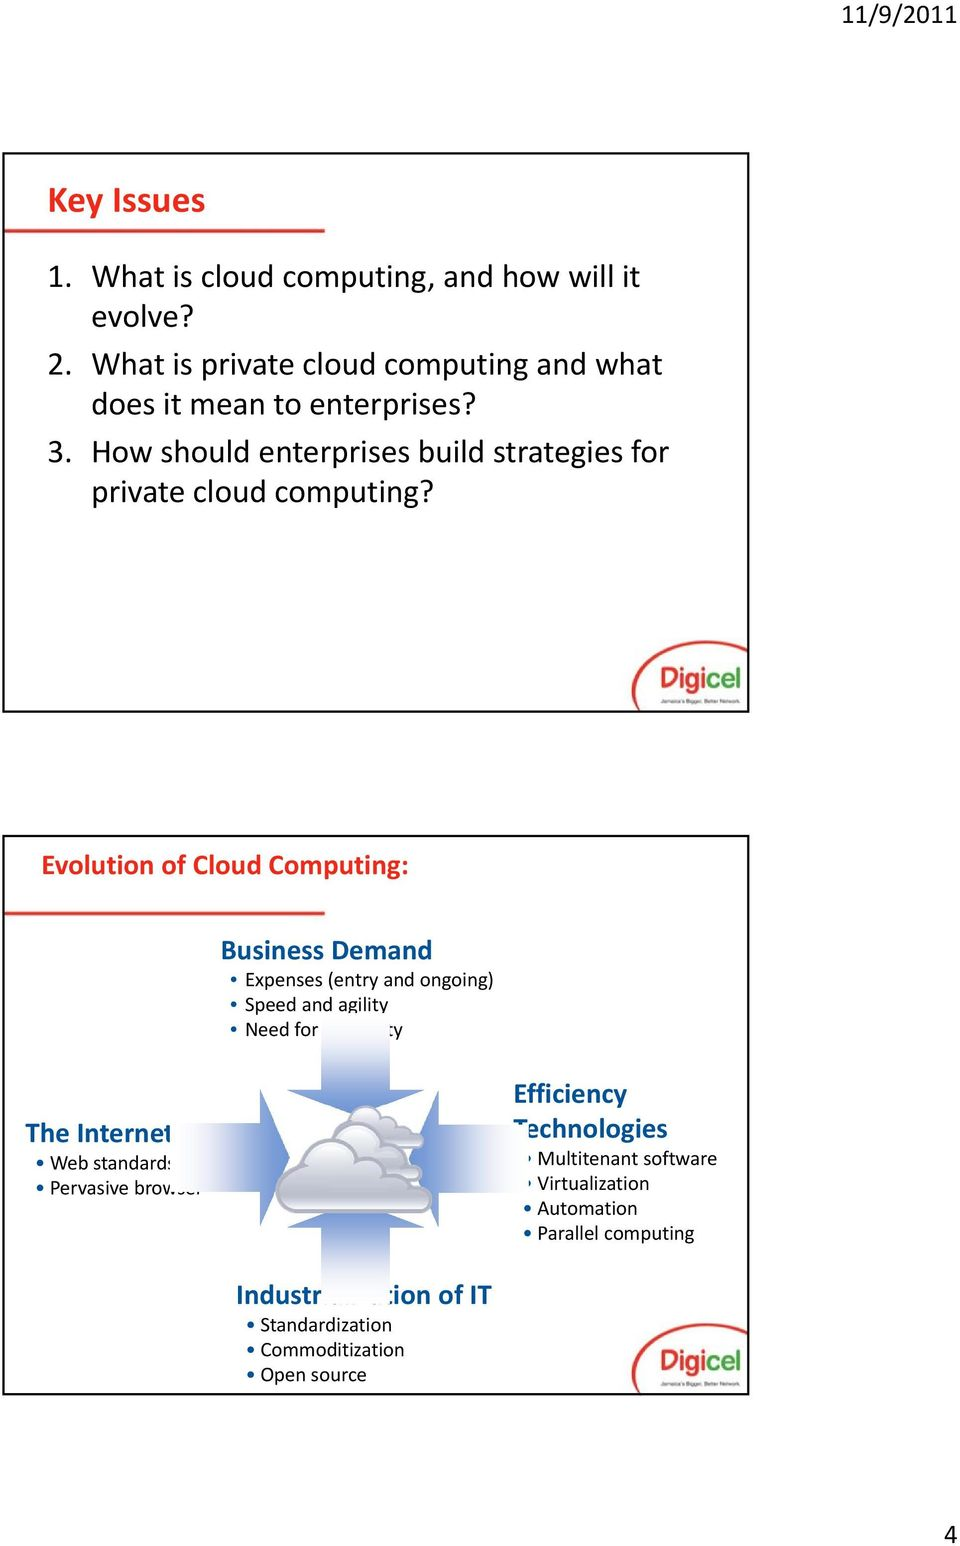 How should enterprises build strategies for private cloud computing?